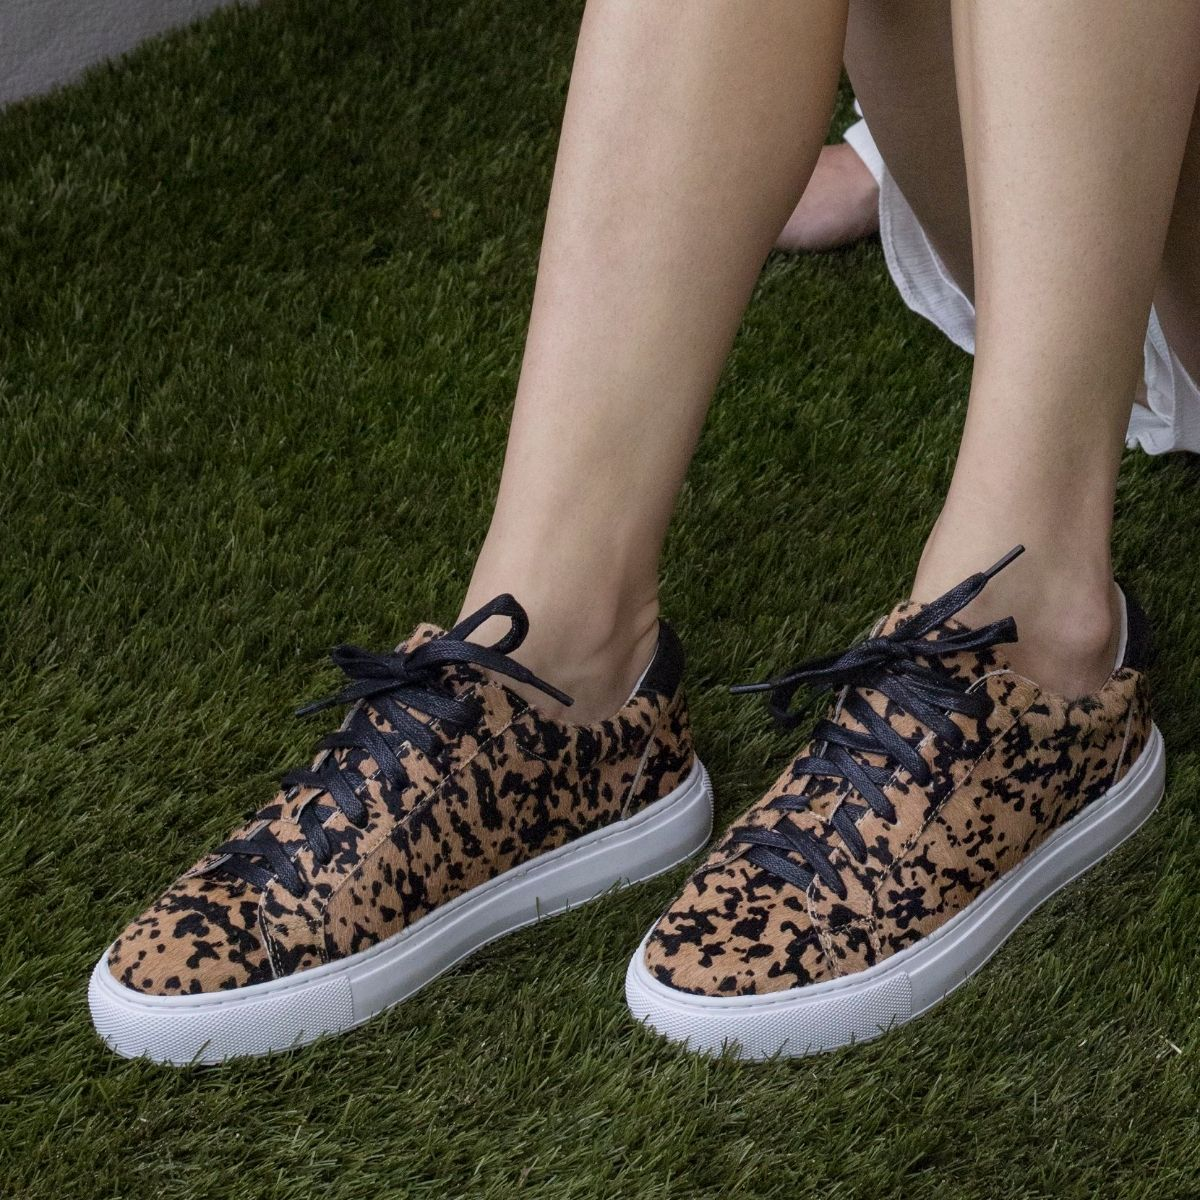 Cocorose Hoxton Trainers - Leopard Pony Hair Leather Trainers and Sneakers